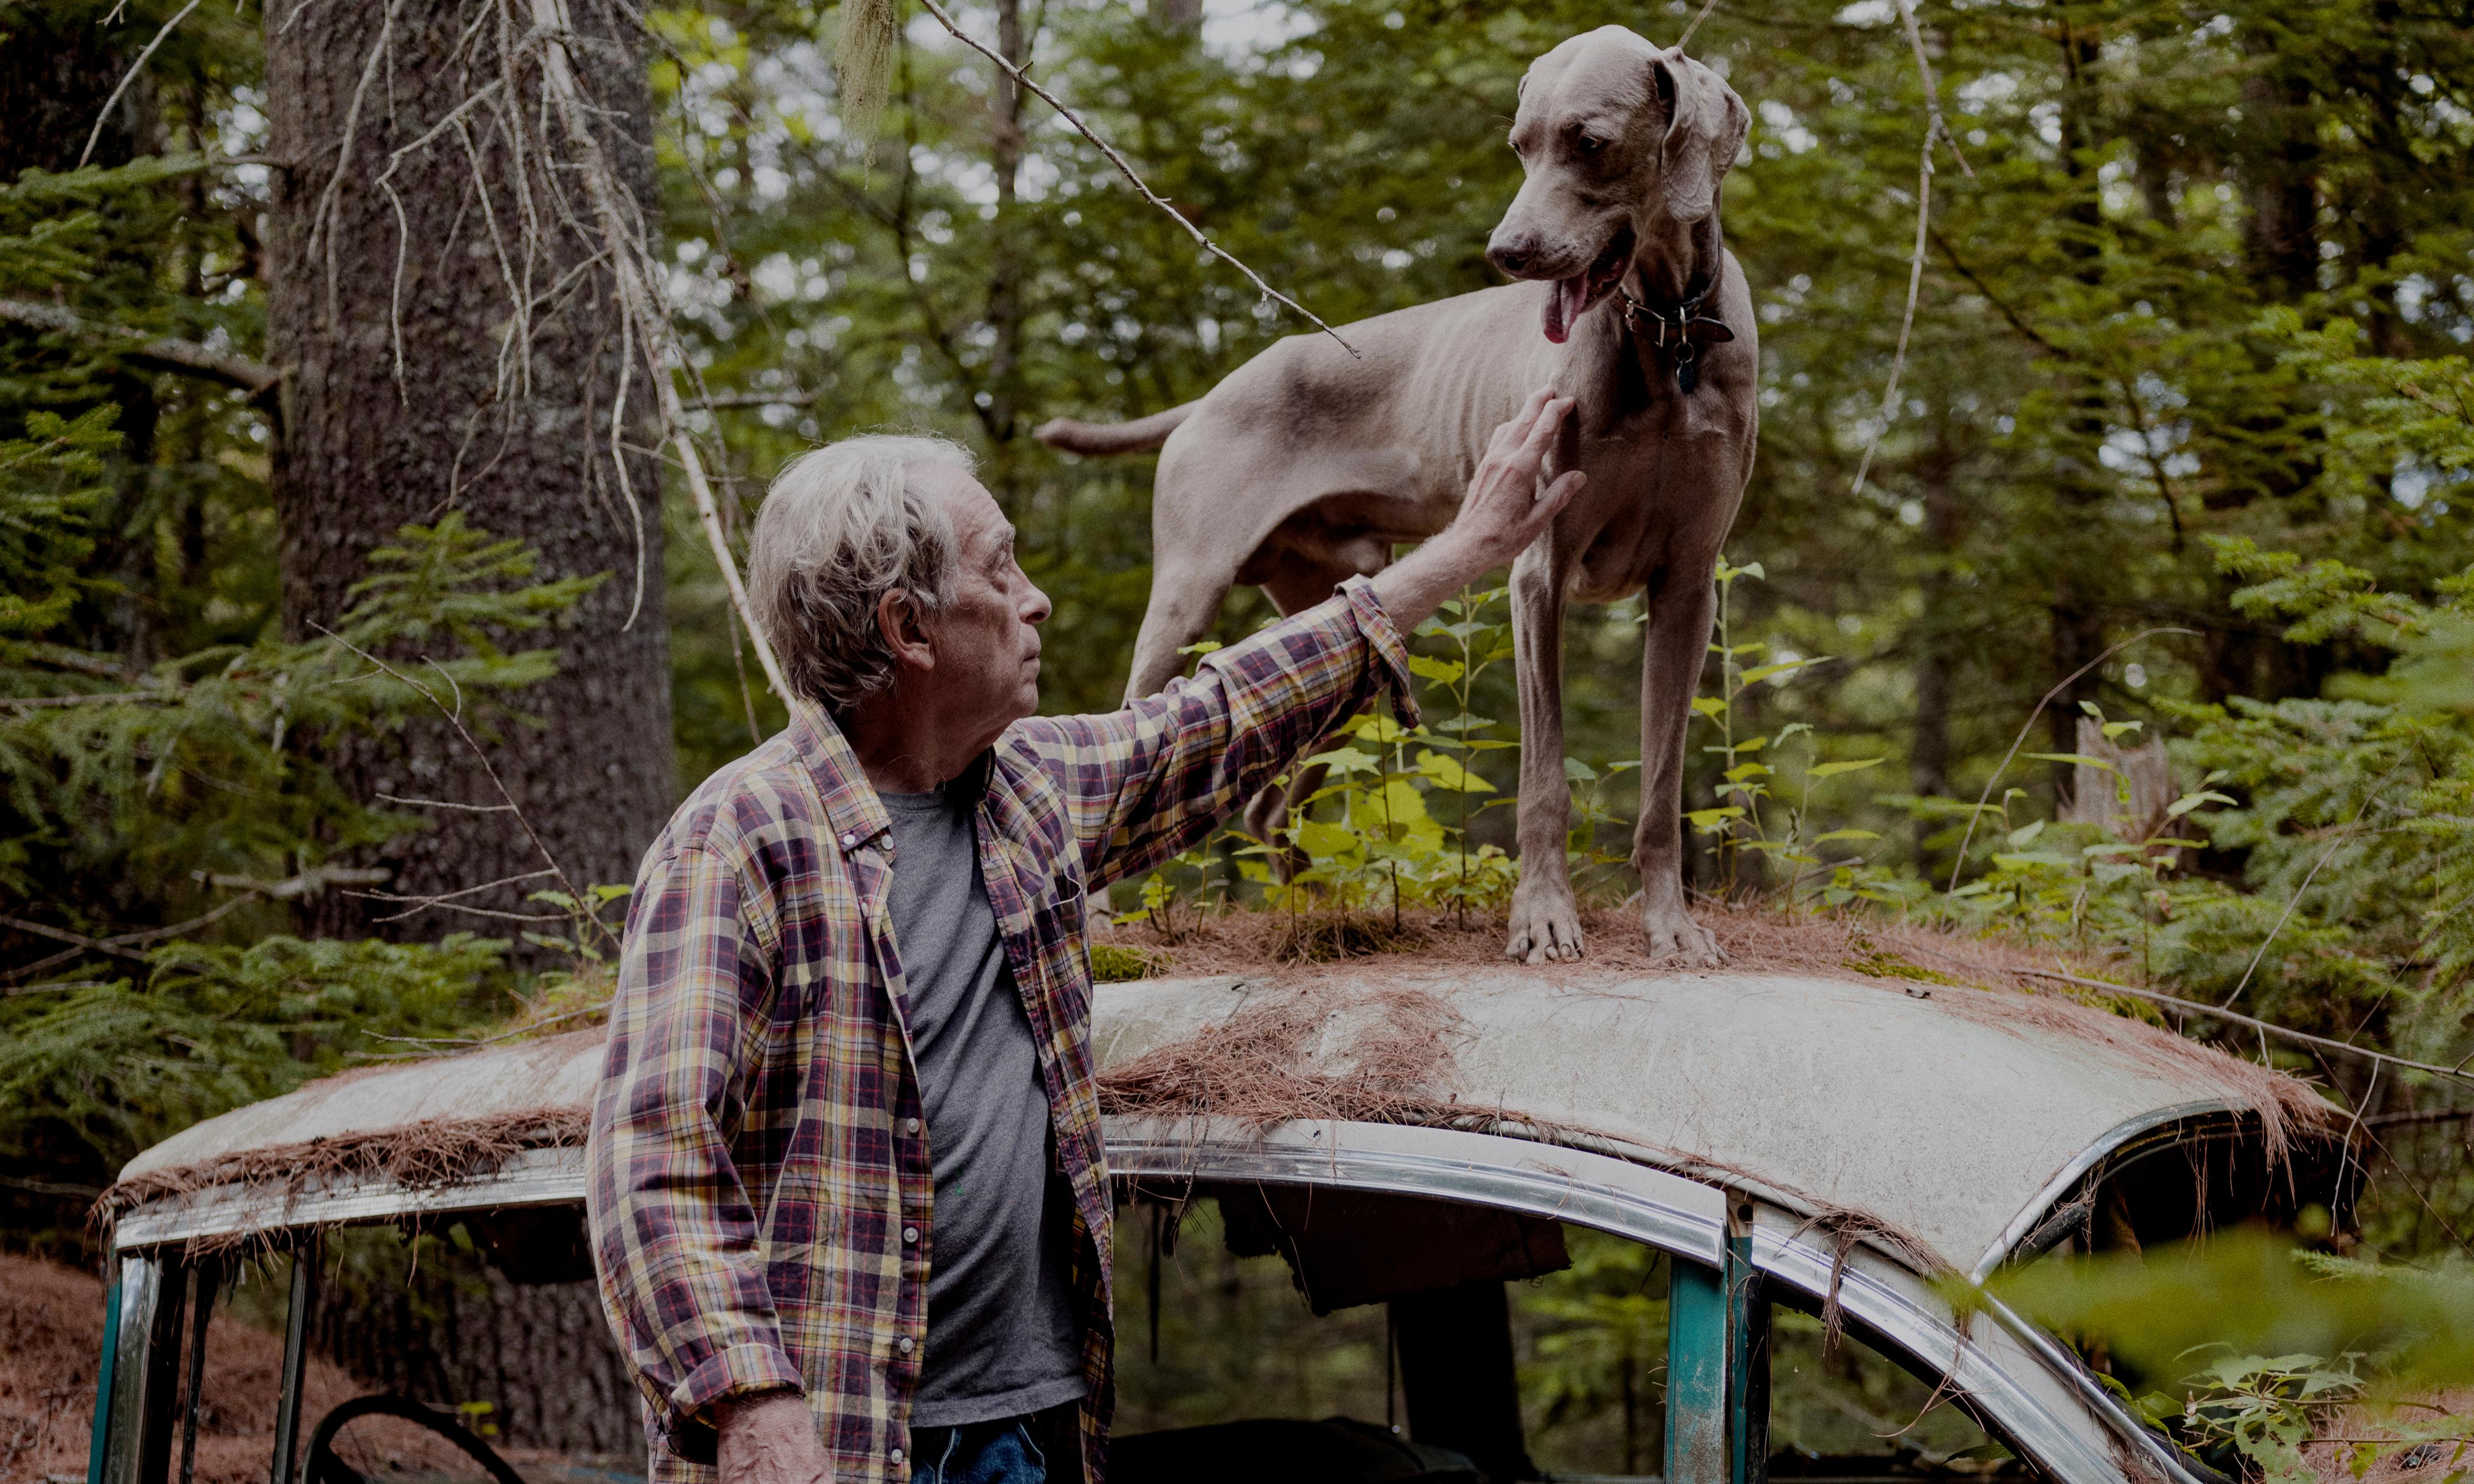 William Wegman: 'Weimaraners are serious and try hard. They're spooky and shadowy'